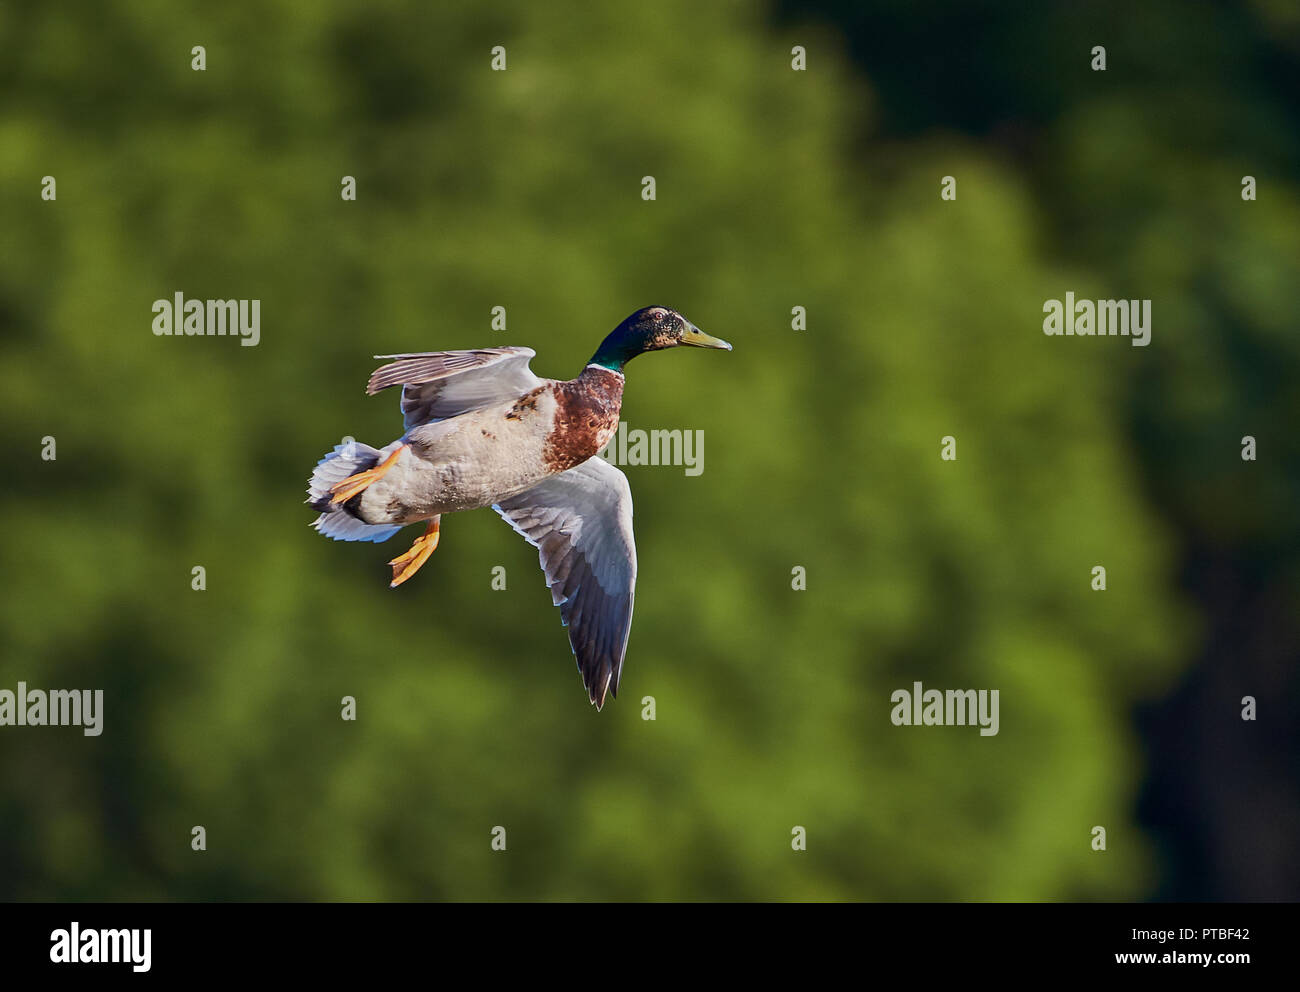 A single male Mallard Duck (Anas Playtrhynchos) flying with wings spread open preparing to land with green trees in the background - Stock Image